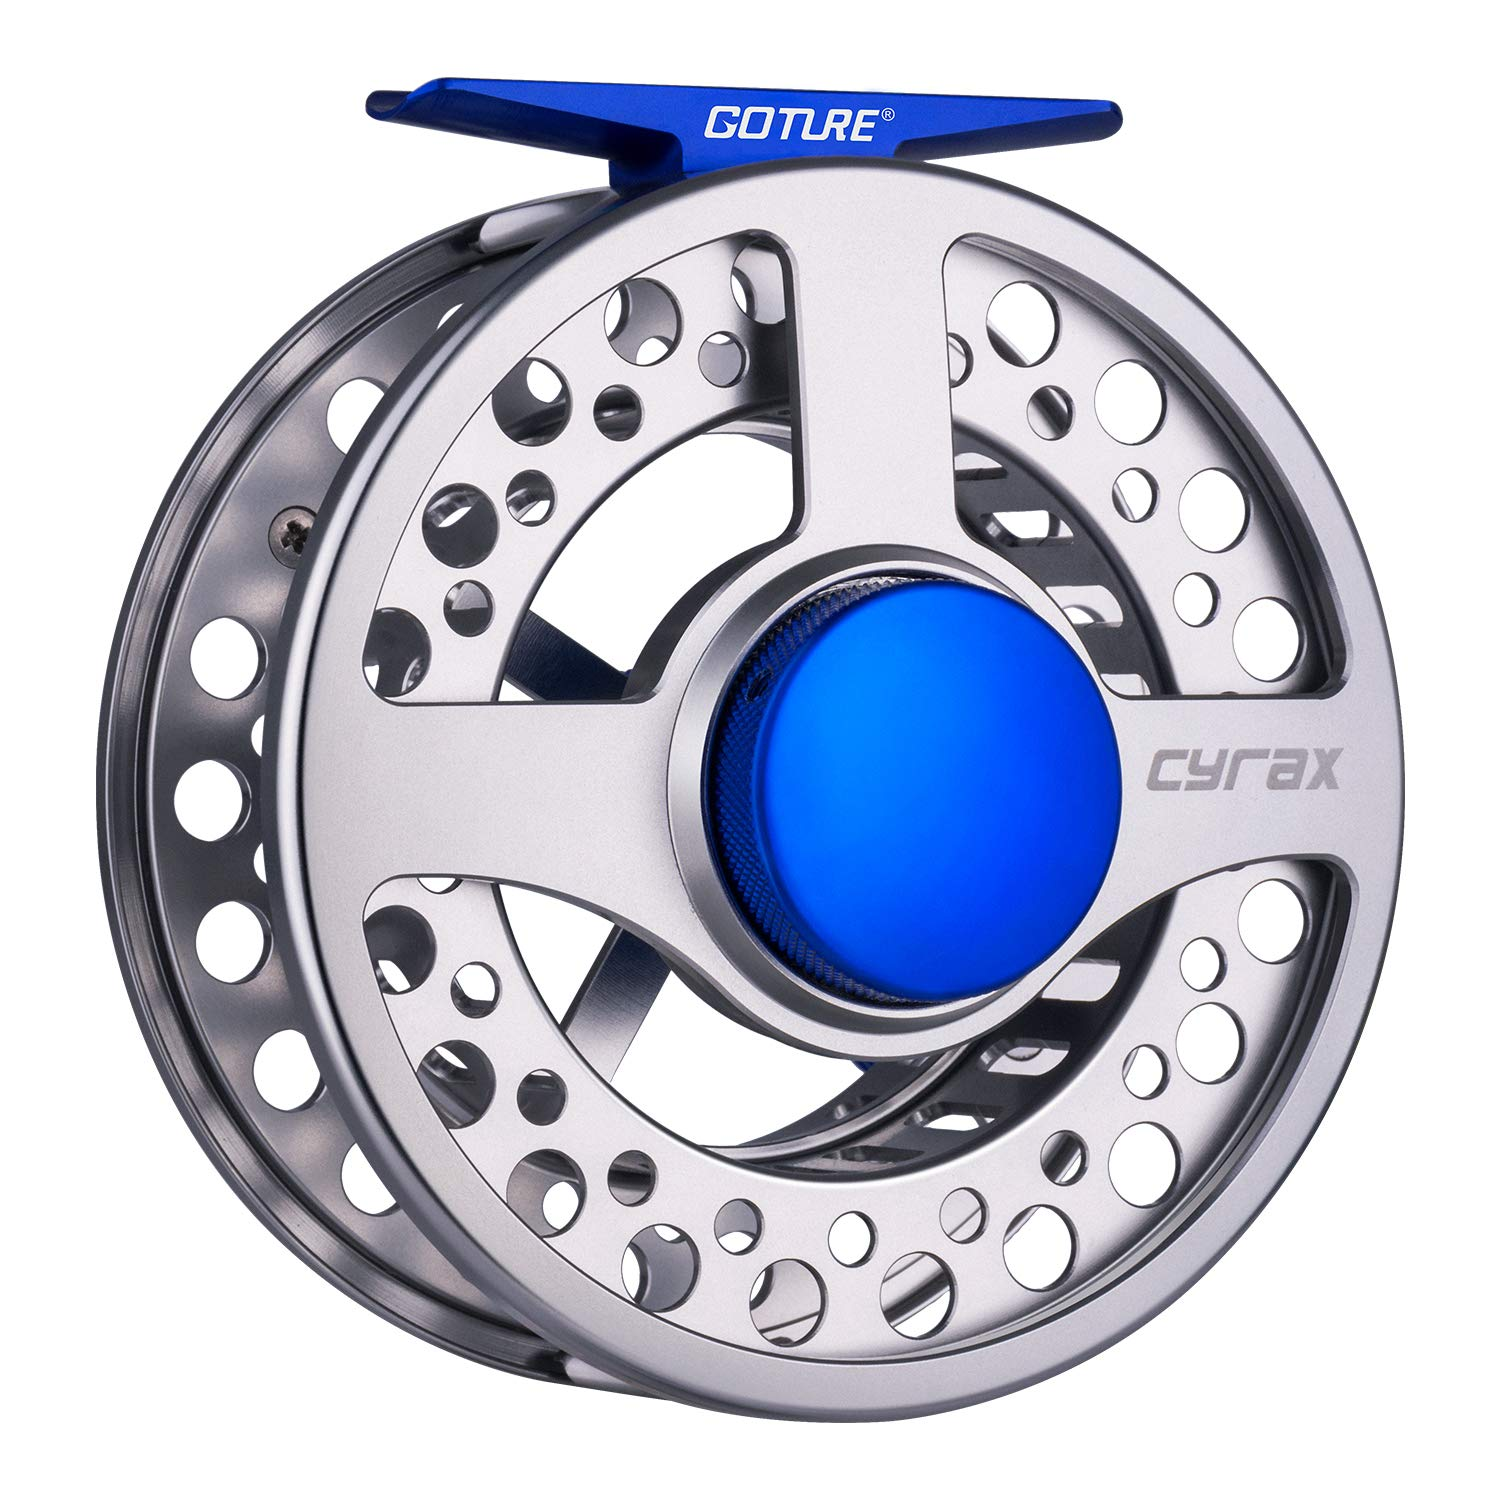 Goture Large Arbor Fly Fishing Reel – CNC-Machined Aluminum Fly Reel for Redfish, Trout, Bass – 3 4wt, 5 6wt,7 8wt,9 10wt Fishing Reel